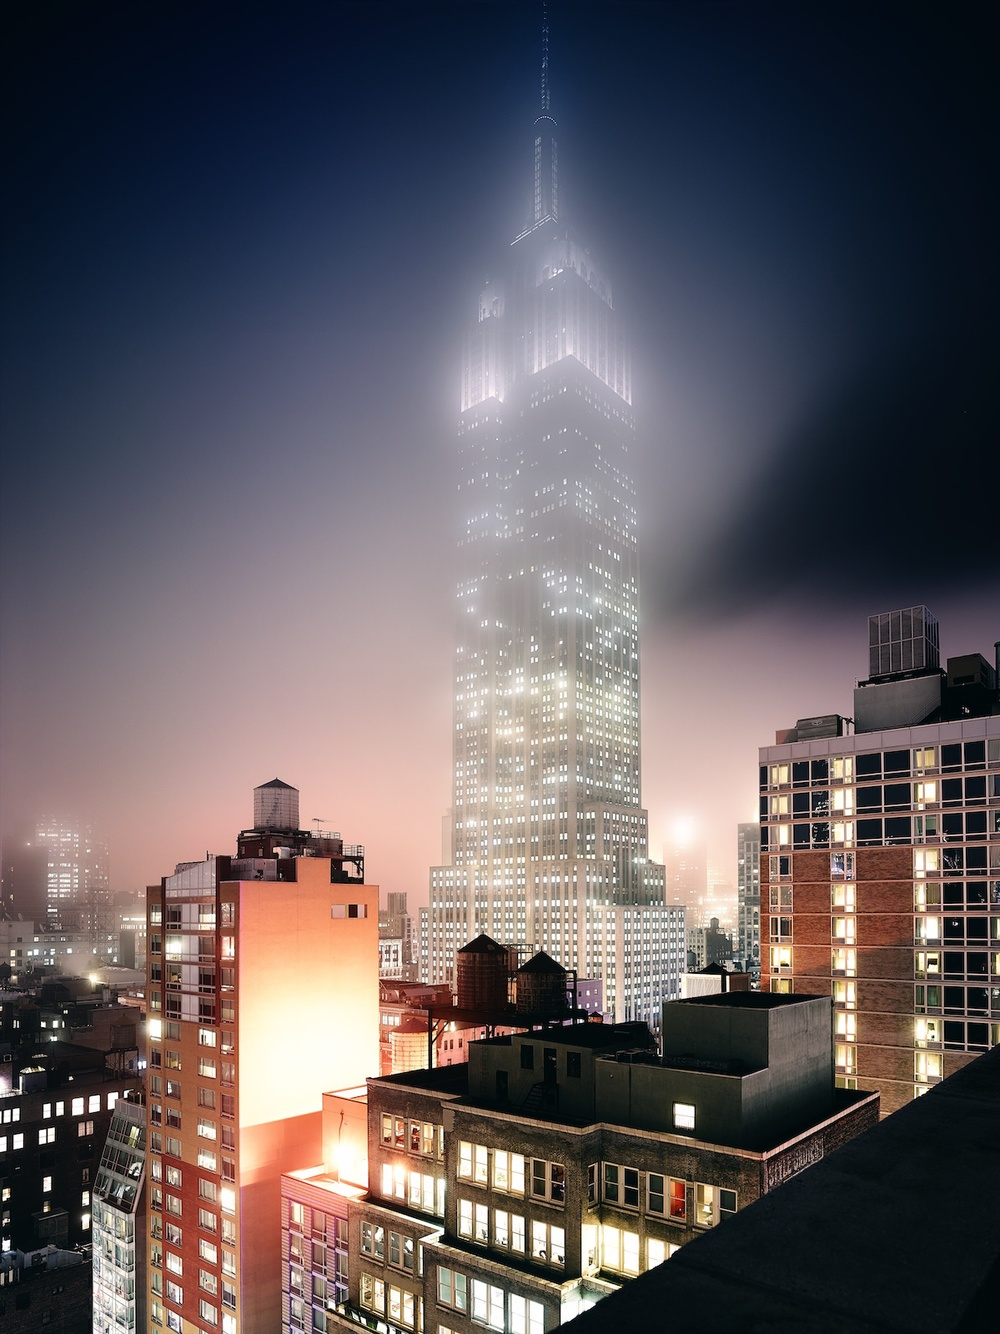 THAT foggy day in NY. This image circulated around quite a bit. Thanks ArchDaily!